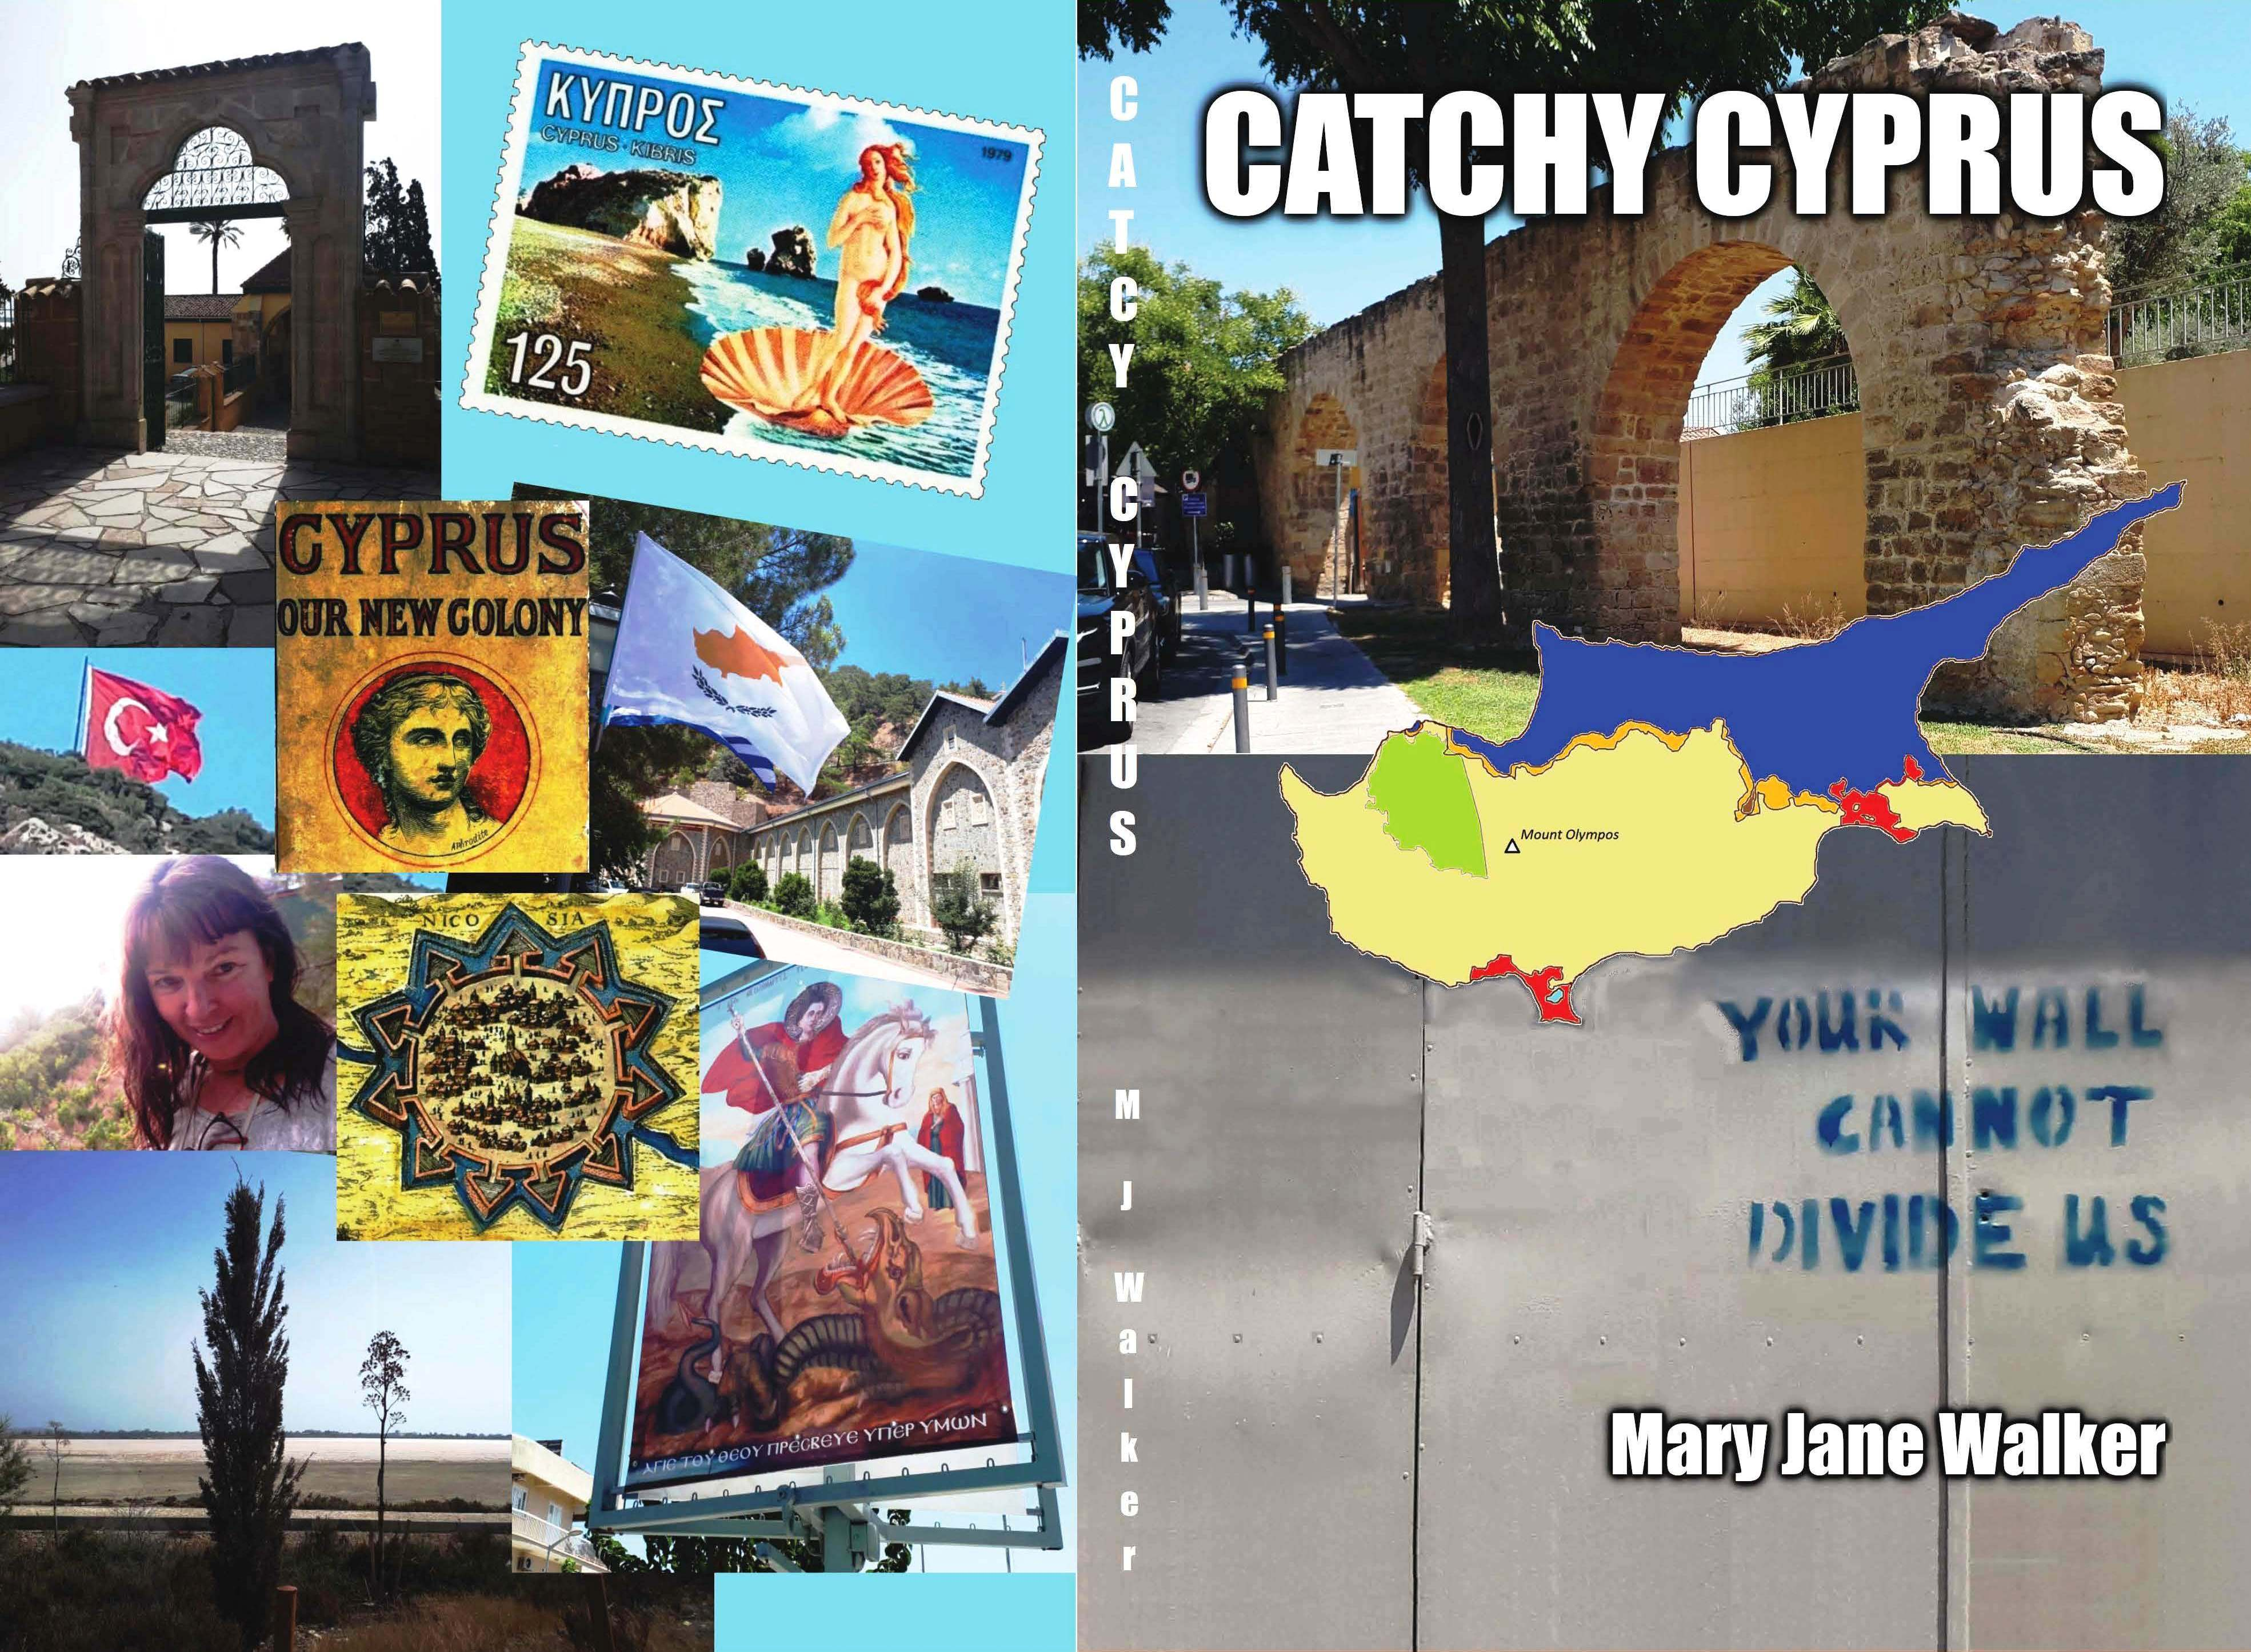 The cover of Catchy Cyprus